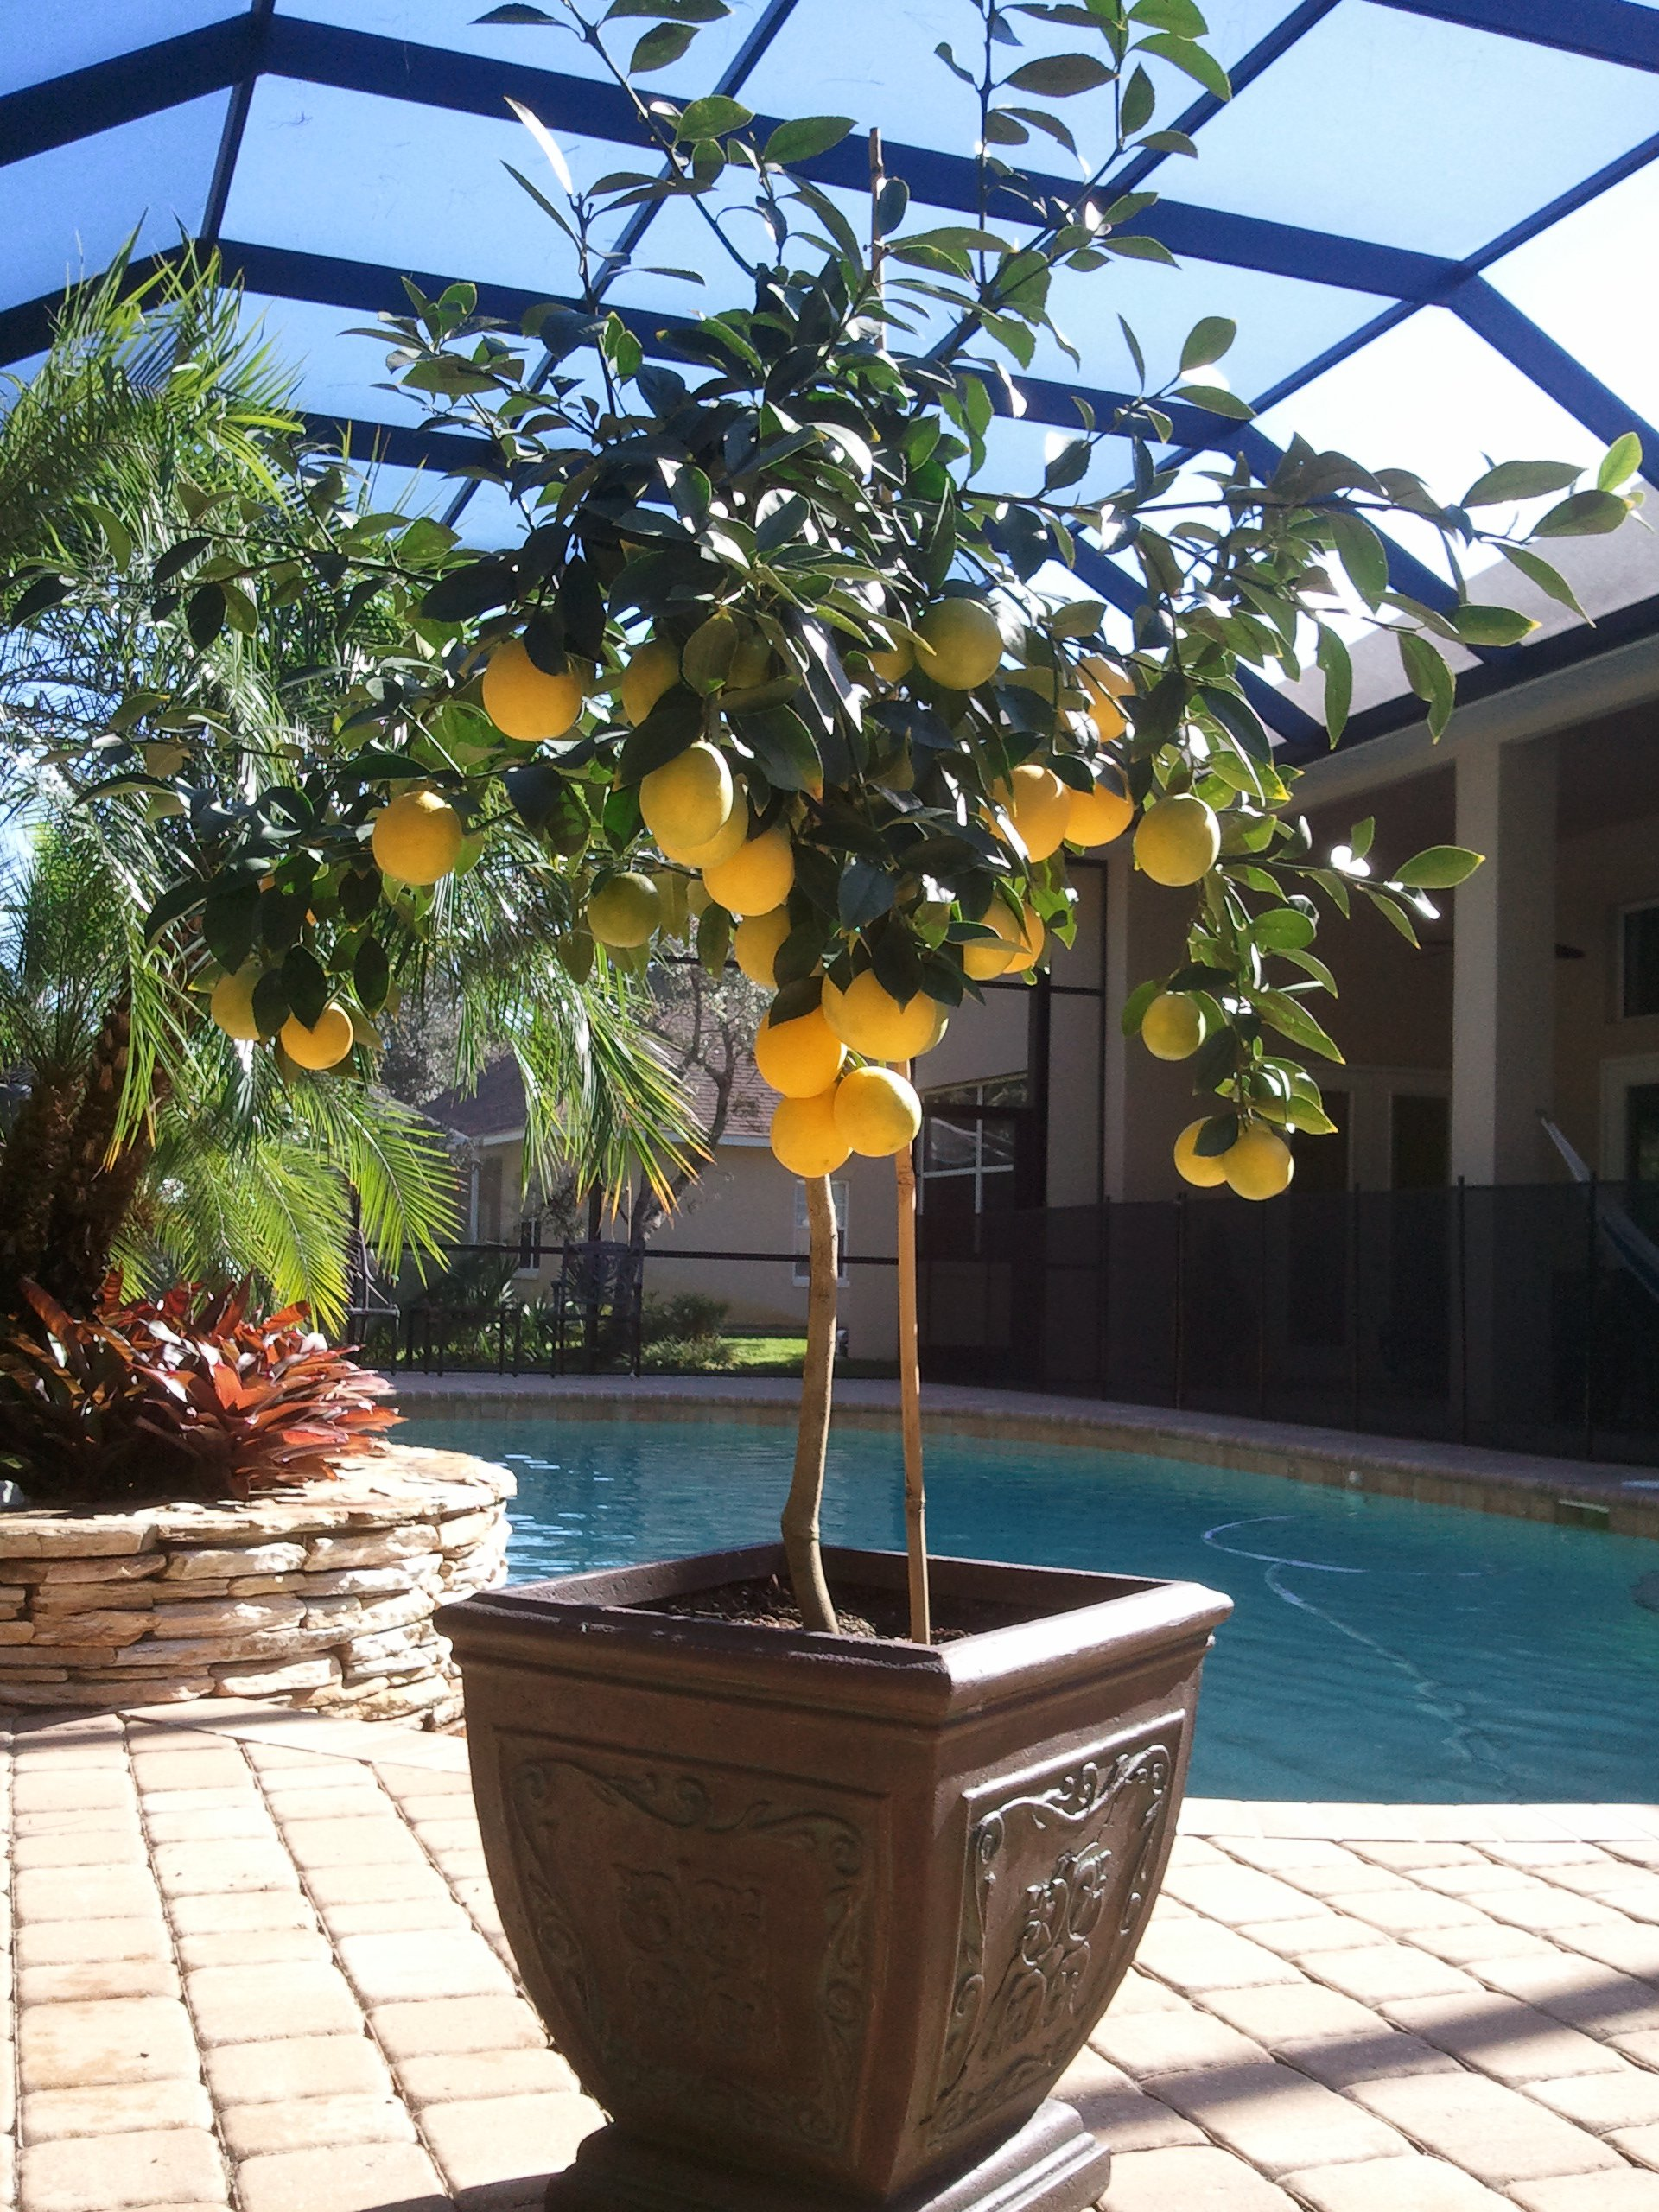 Brighter Blooms Improved Meyer Lemon Tree, Get Fruit 1st Year, Dwarf Fruit Tree with Sweet Lemons, Indoor/Outdoor Live Potted Citrus Tree